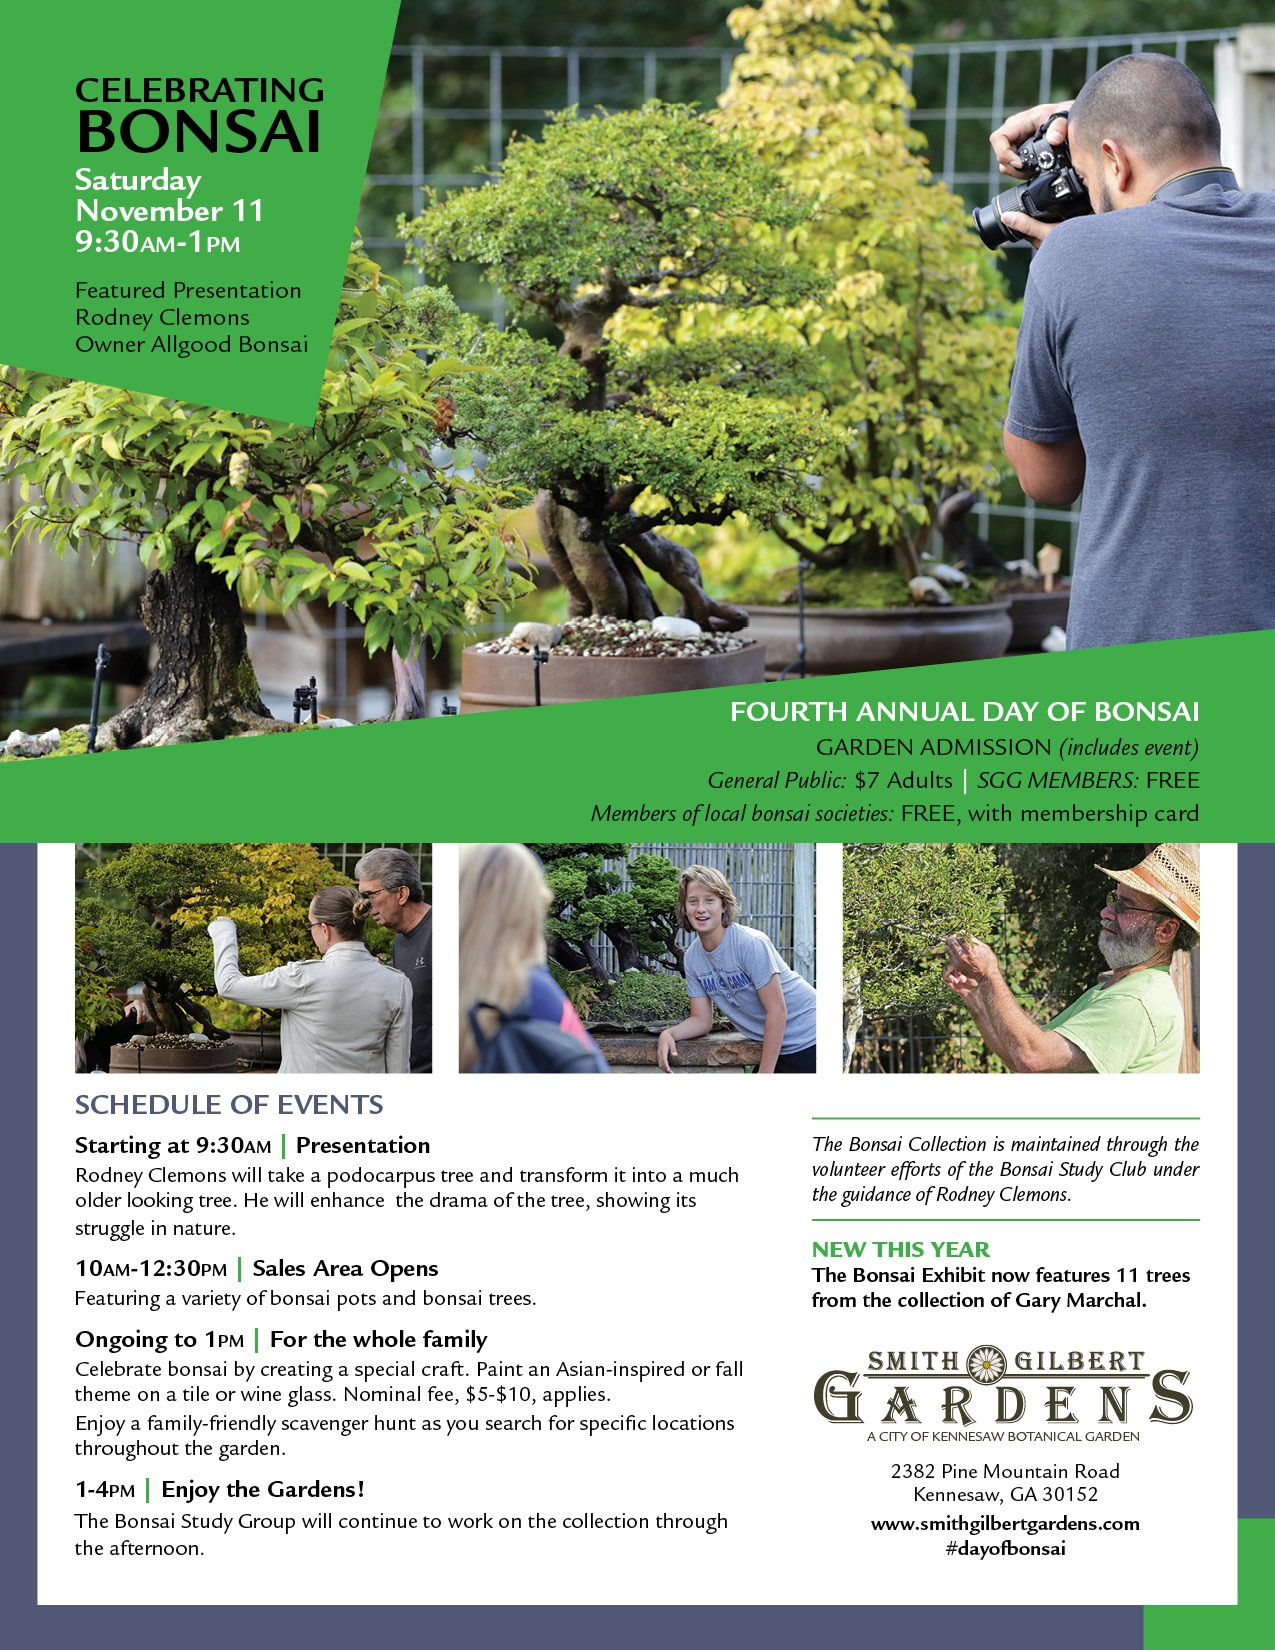 Day of Bonsai 2017